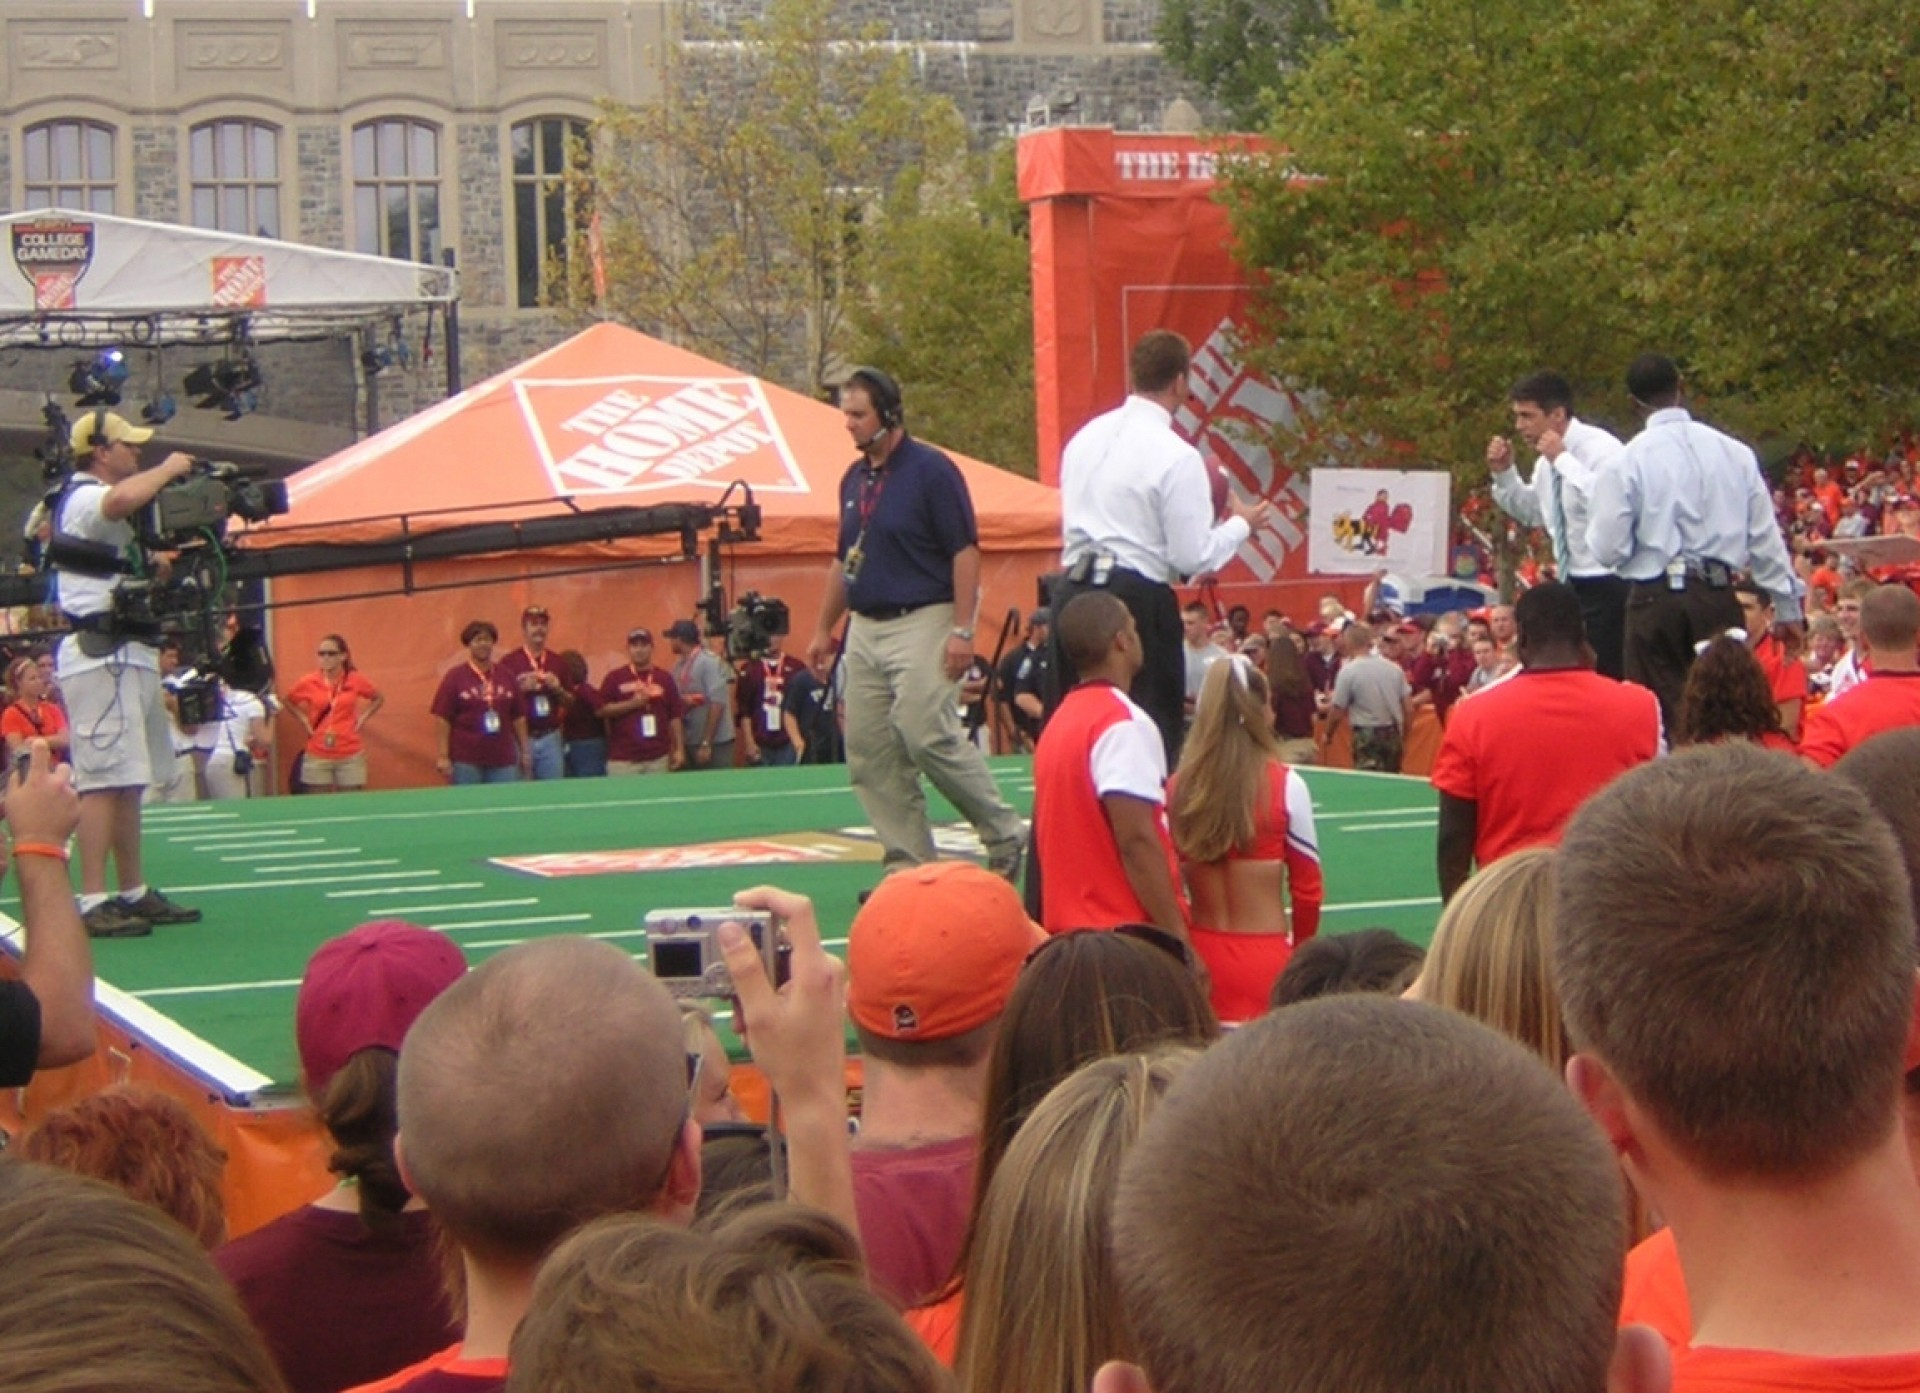 018 Virginia Tech Essay Example College Gameday At The Field Singular Essays Help Examples 1920